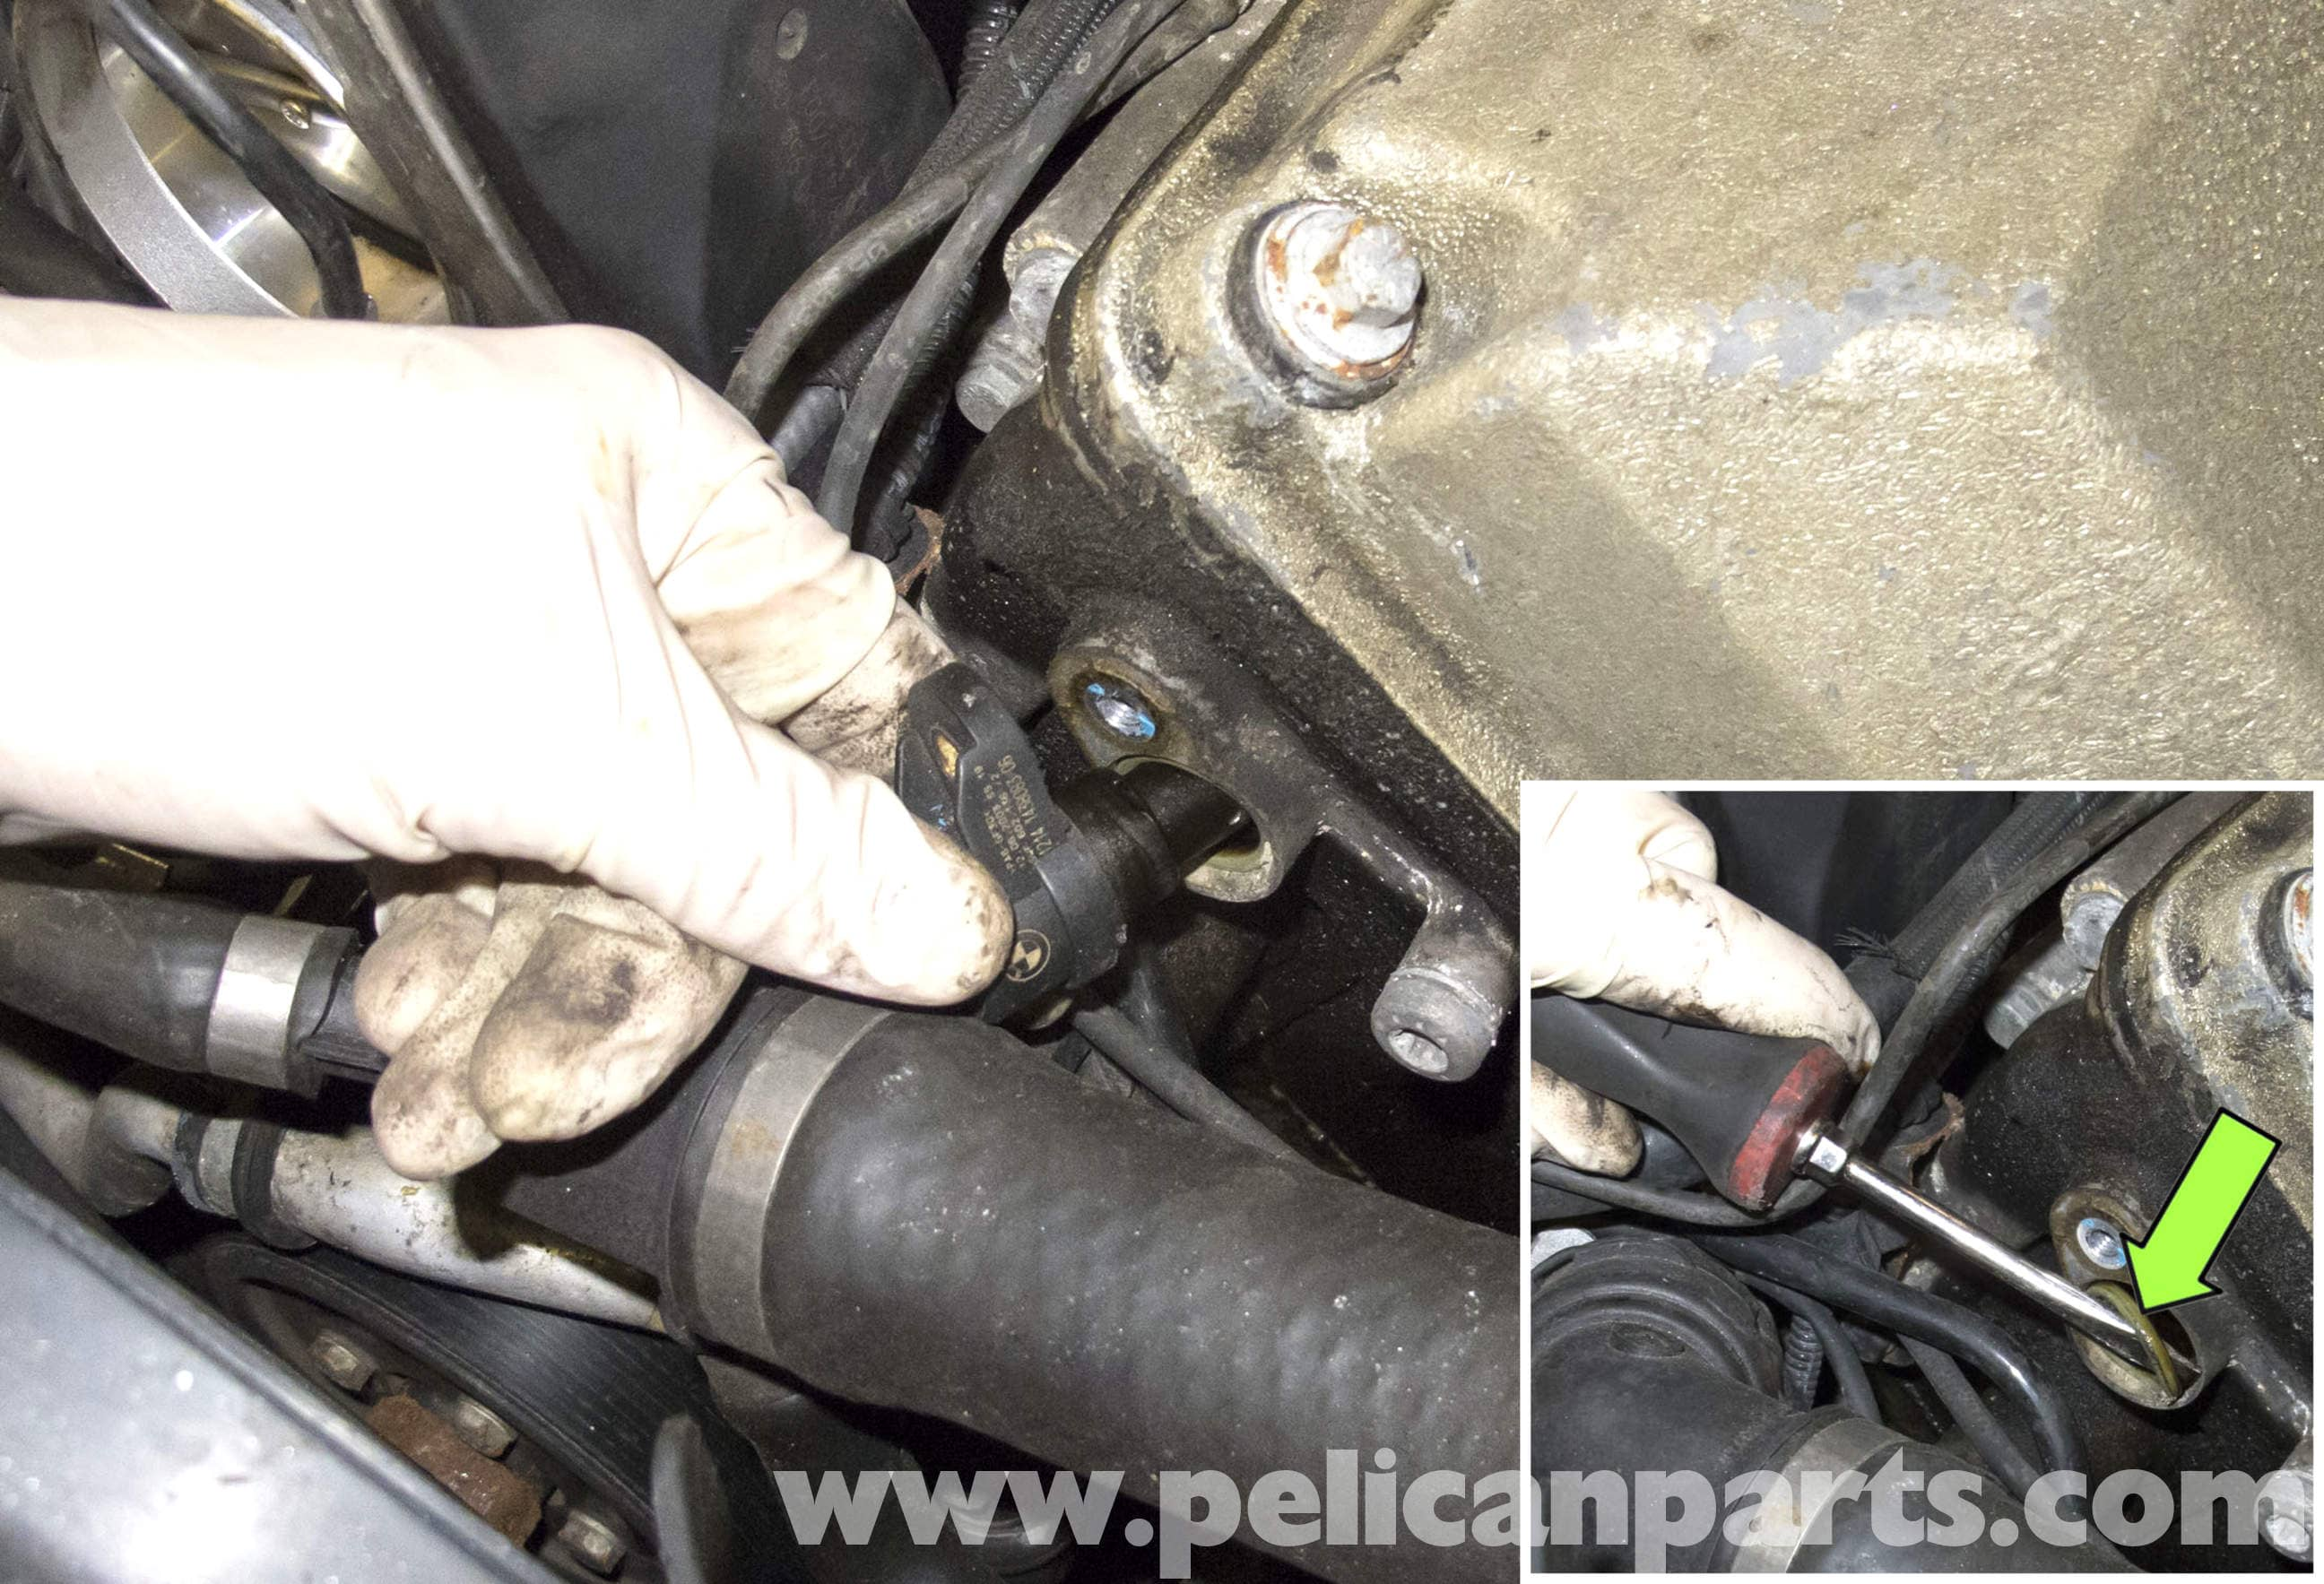 Maxresdefault in addition Exhaust Cam Sensor as well Pic further A F Cf additionally Pic. on bmw camshaft position sensor location